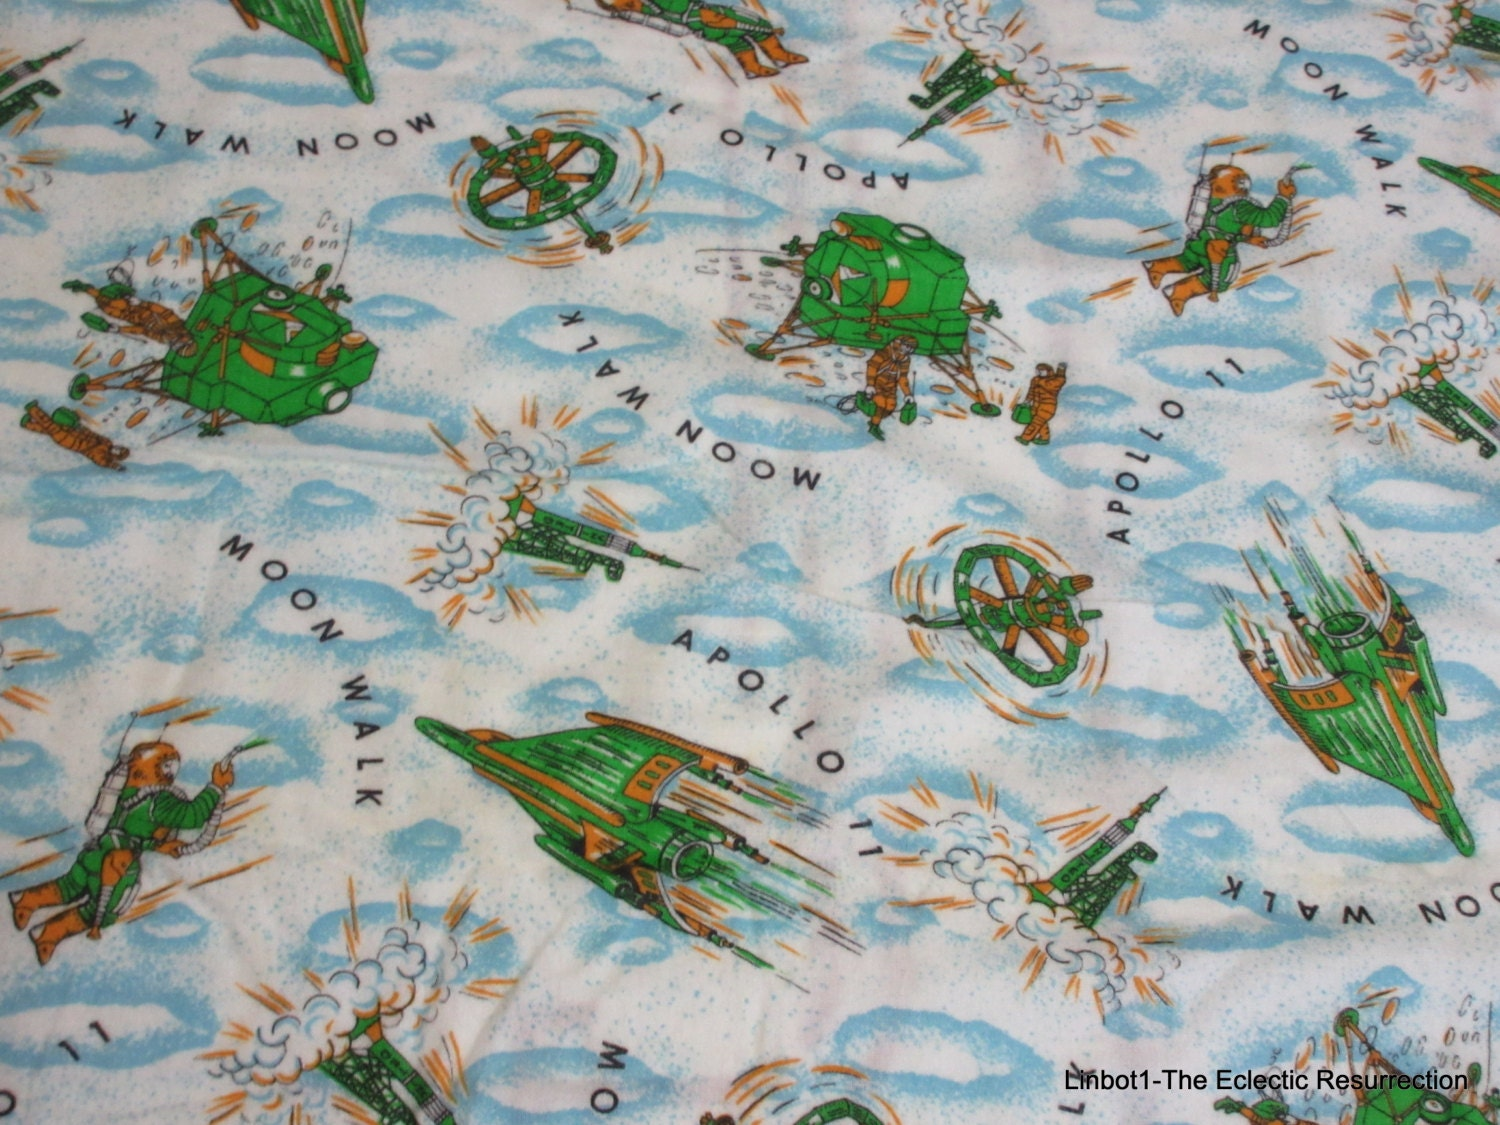 1960 Novelty Lighting : Vintage 1960s Novelty Print Flannel Fabric Apollo 11 by linbot1